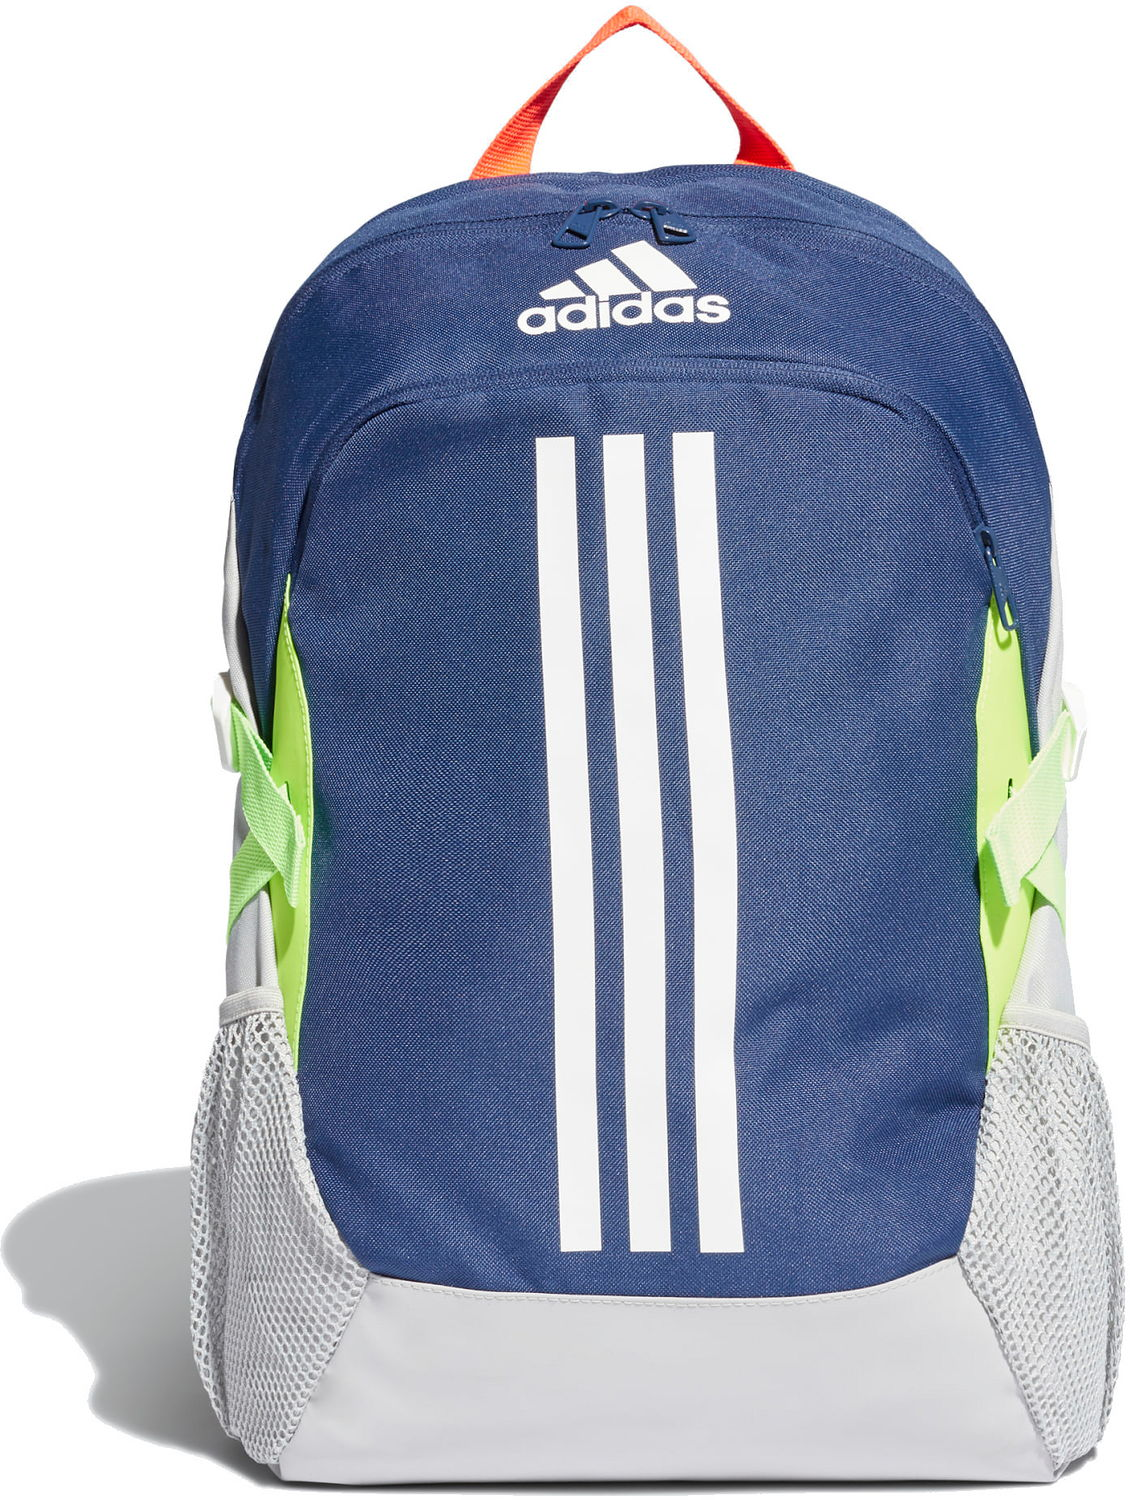 BACKPACK ADIDAS BP POWER V FJ925, blue-grey-lime, white logo